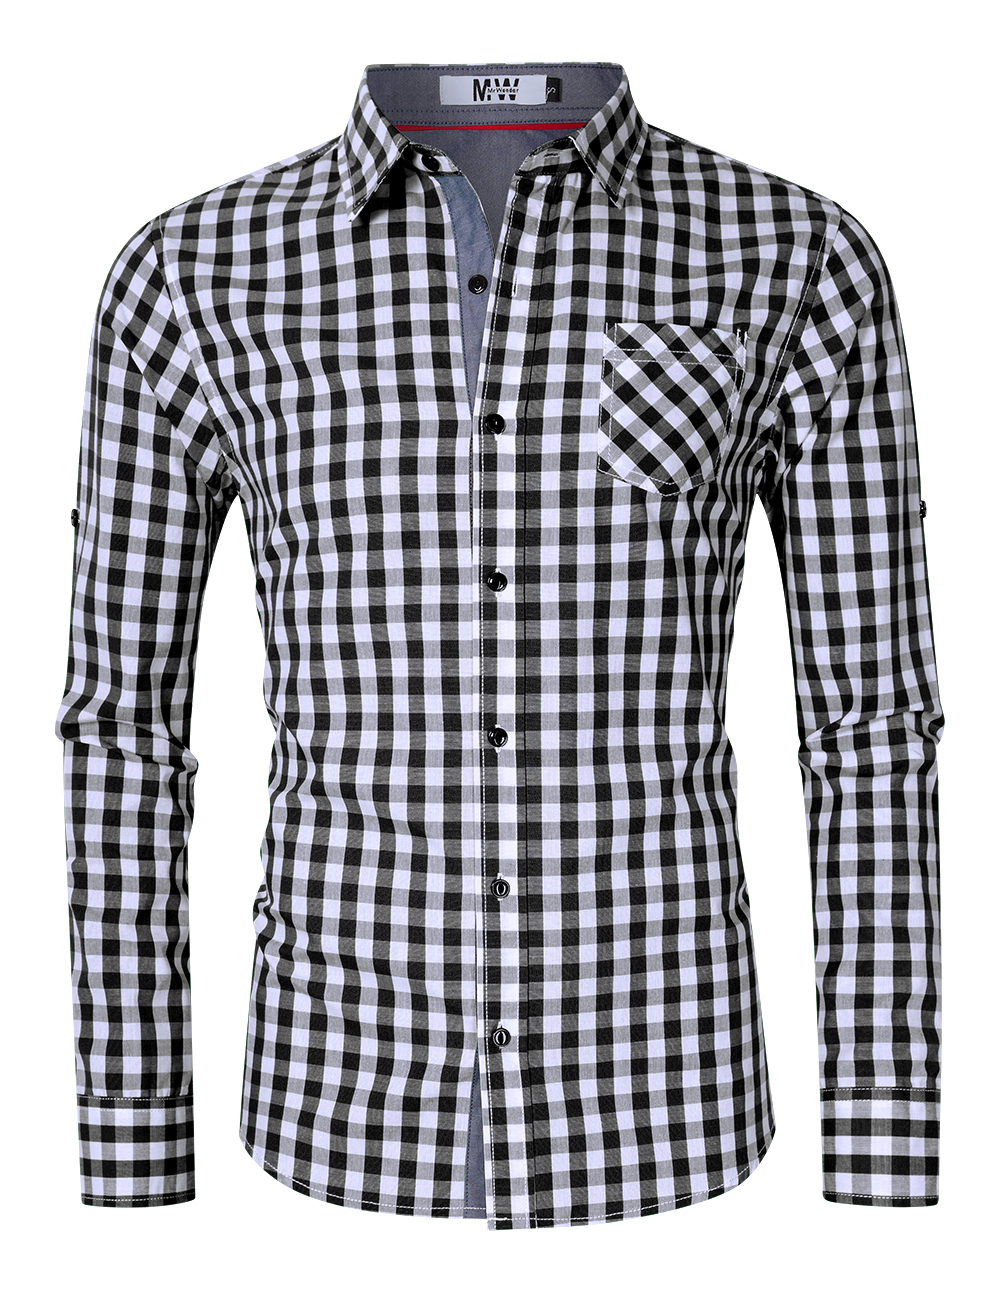 MrWonder Men's Slim Fit 100% Cotton Button Down Long Sleeve Plaid Shirt Black and white grid_M